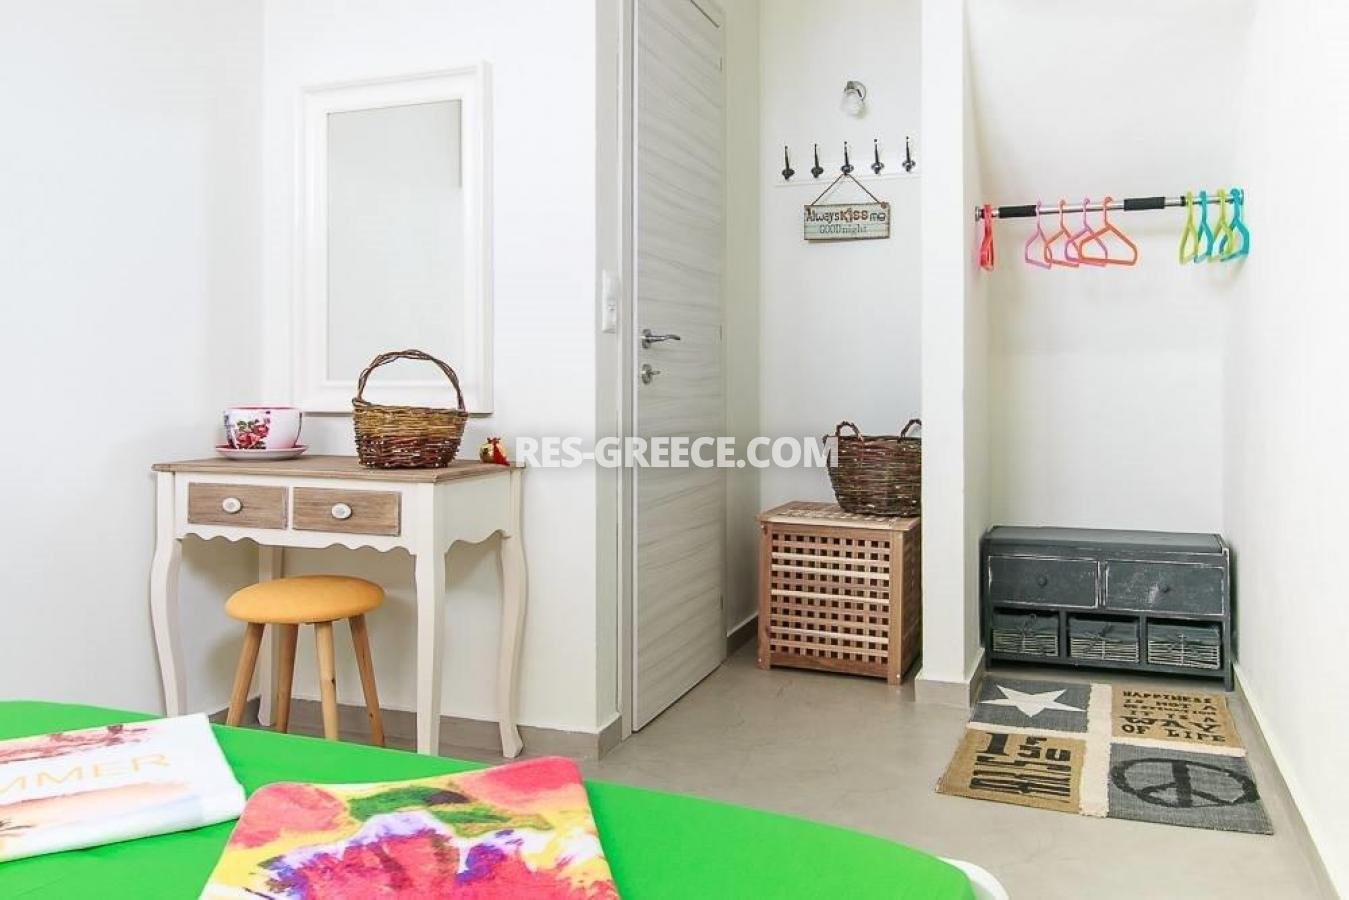 Villa MM, Northern Aegean Islands, Greece - 2 luxury properties in a gated complex with private beach - Photo 4